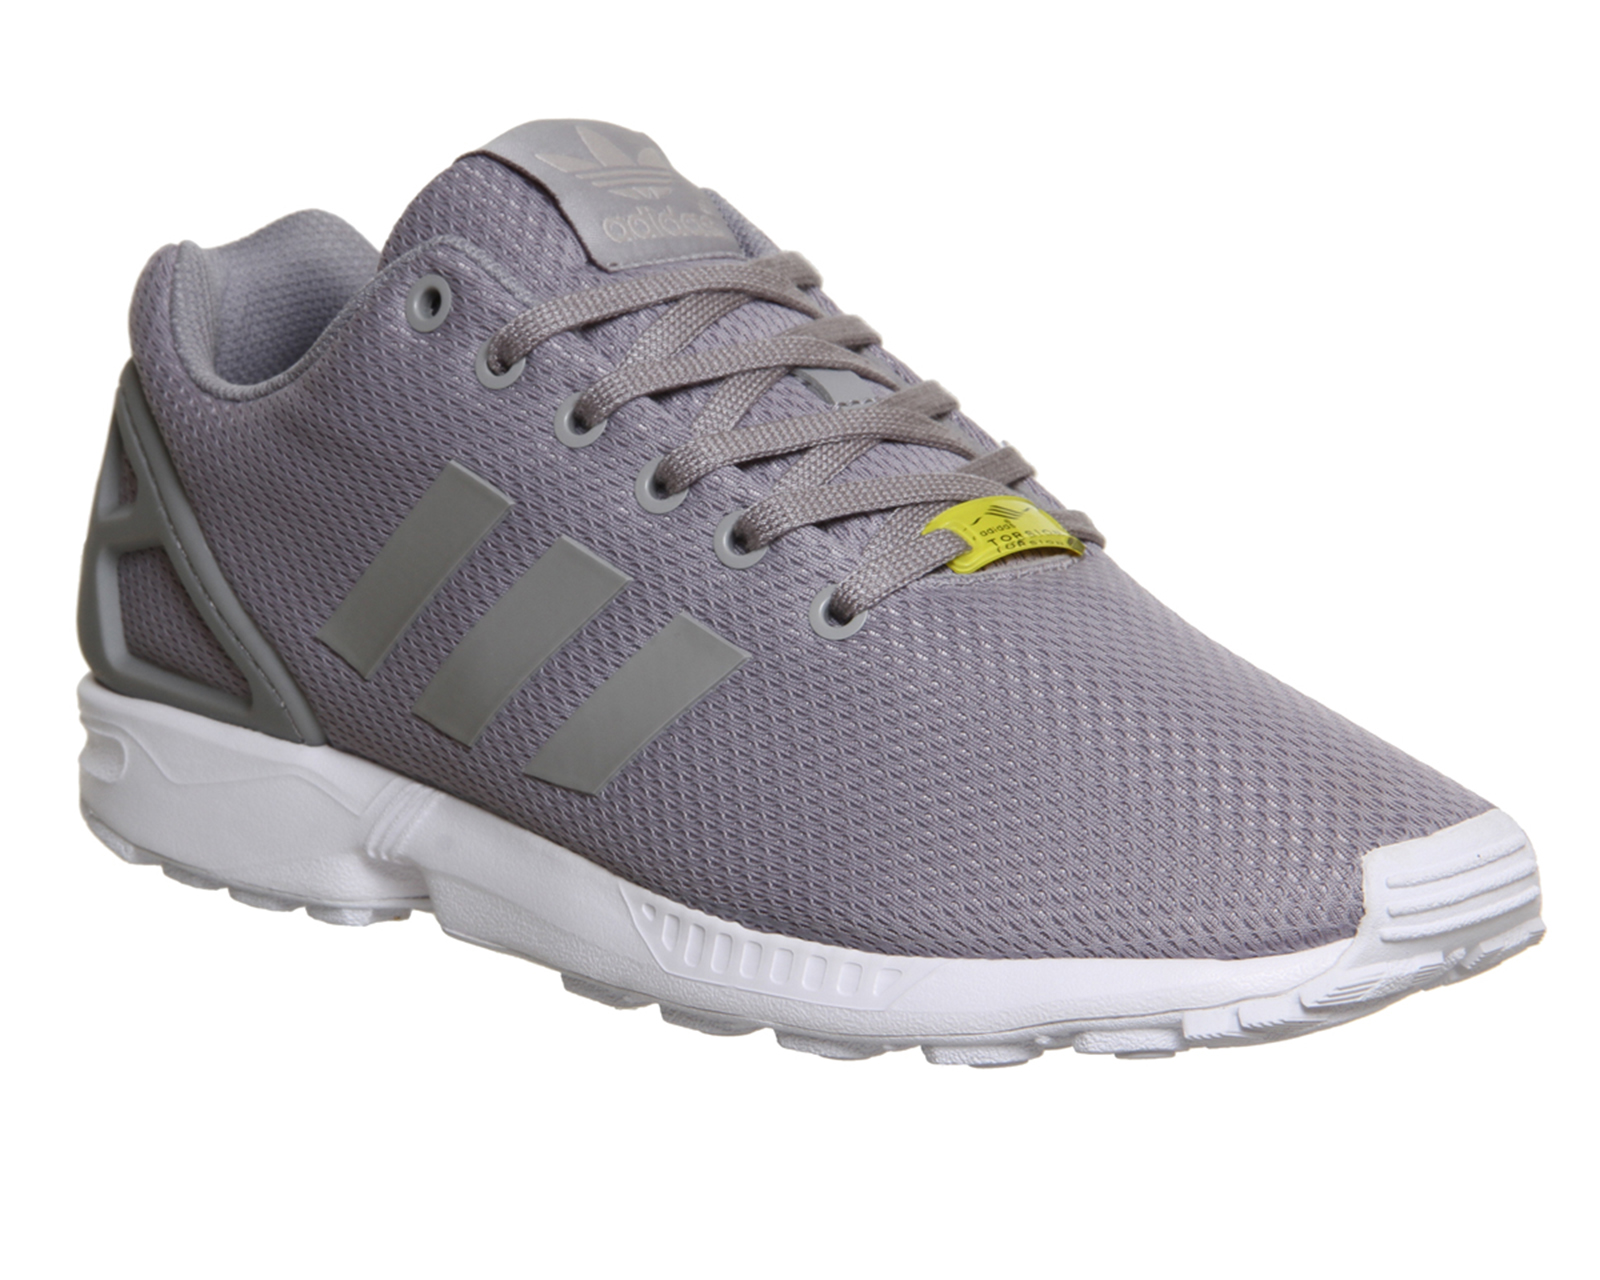 Adidas Torsion Zx Flux Herren